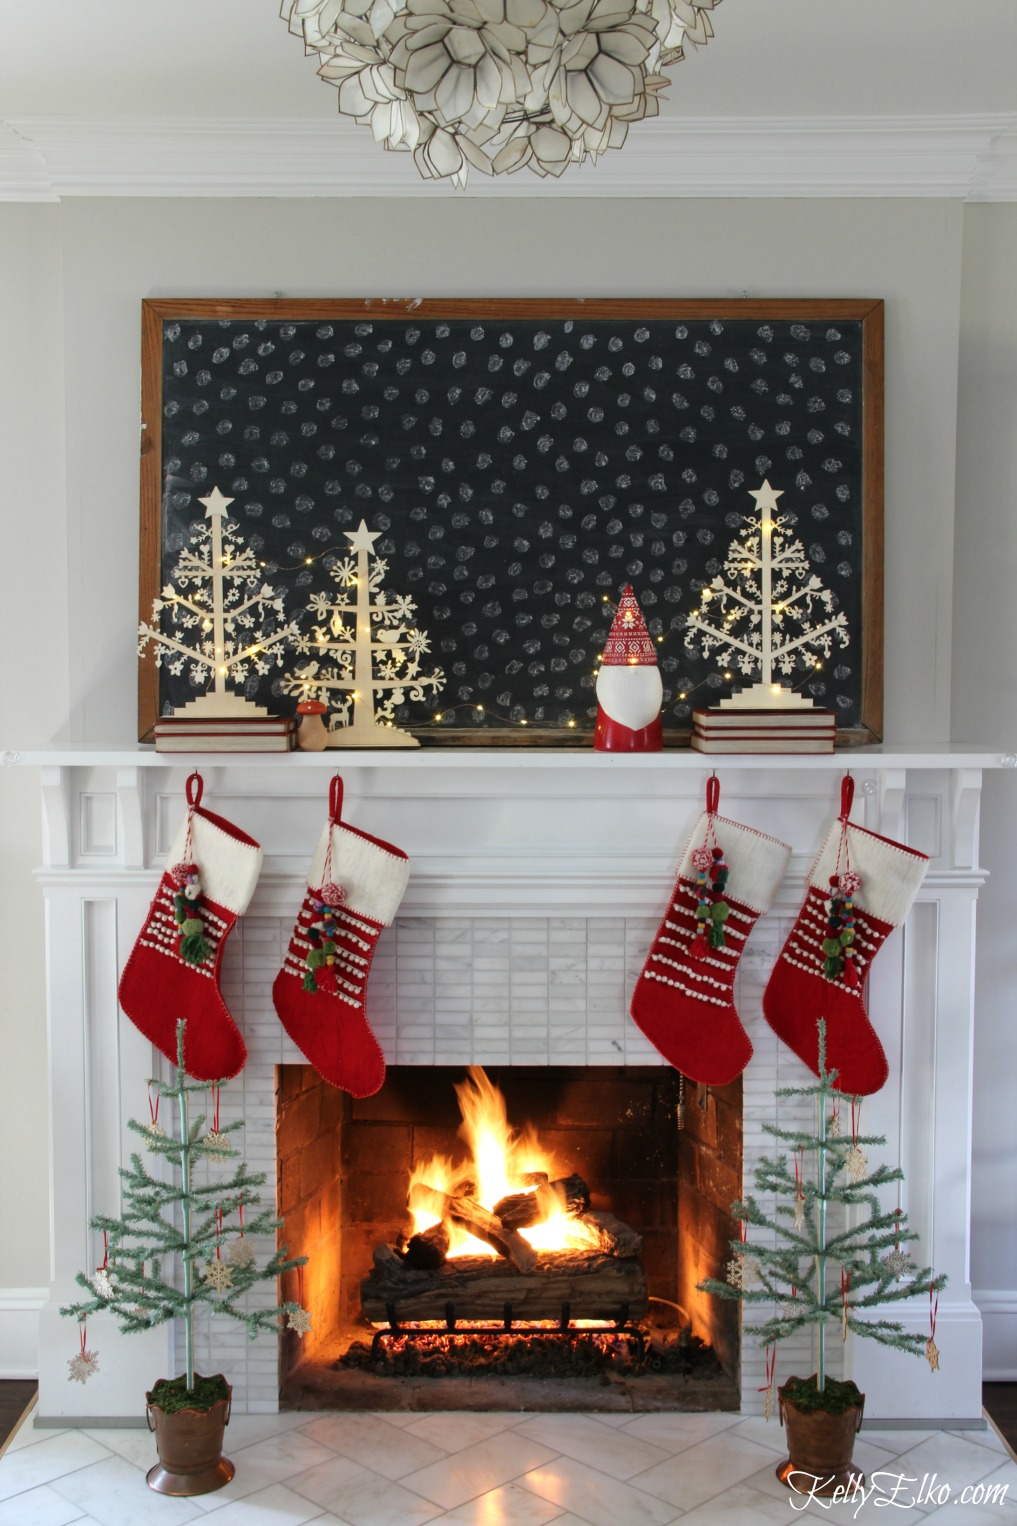 Christmas Home Tour - love this Scandinavian style mantel with huge chalkboard and pom pom stockings kellyelko.com